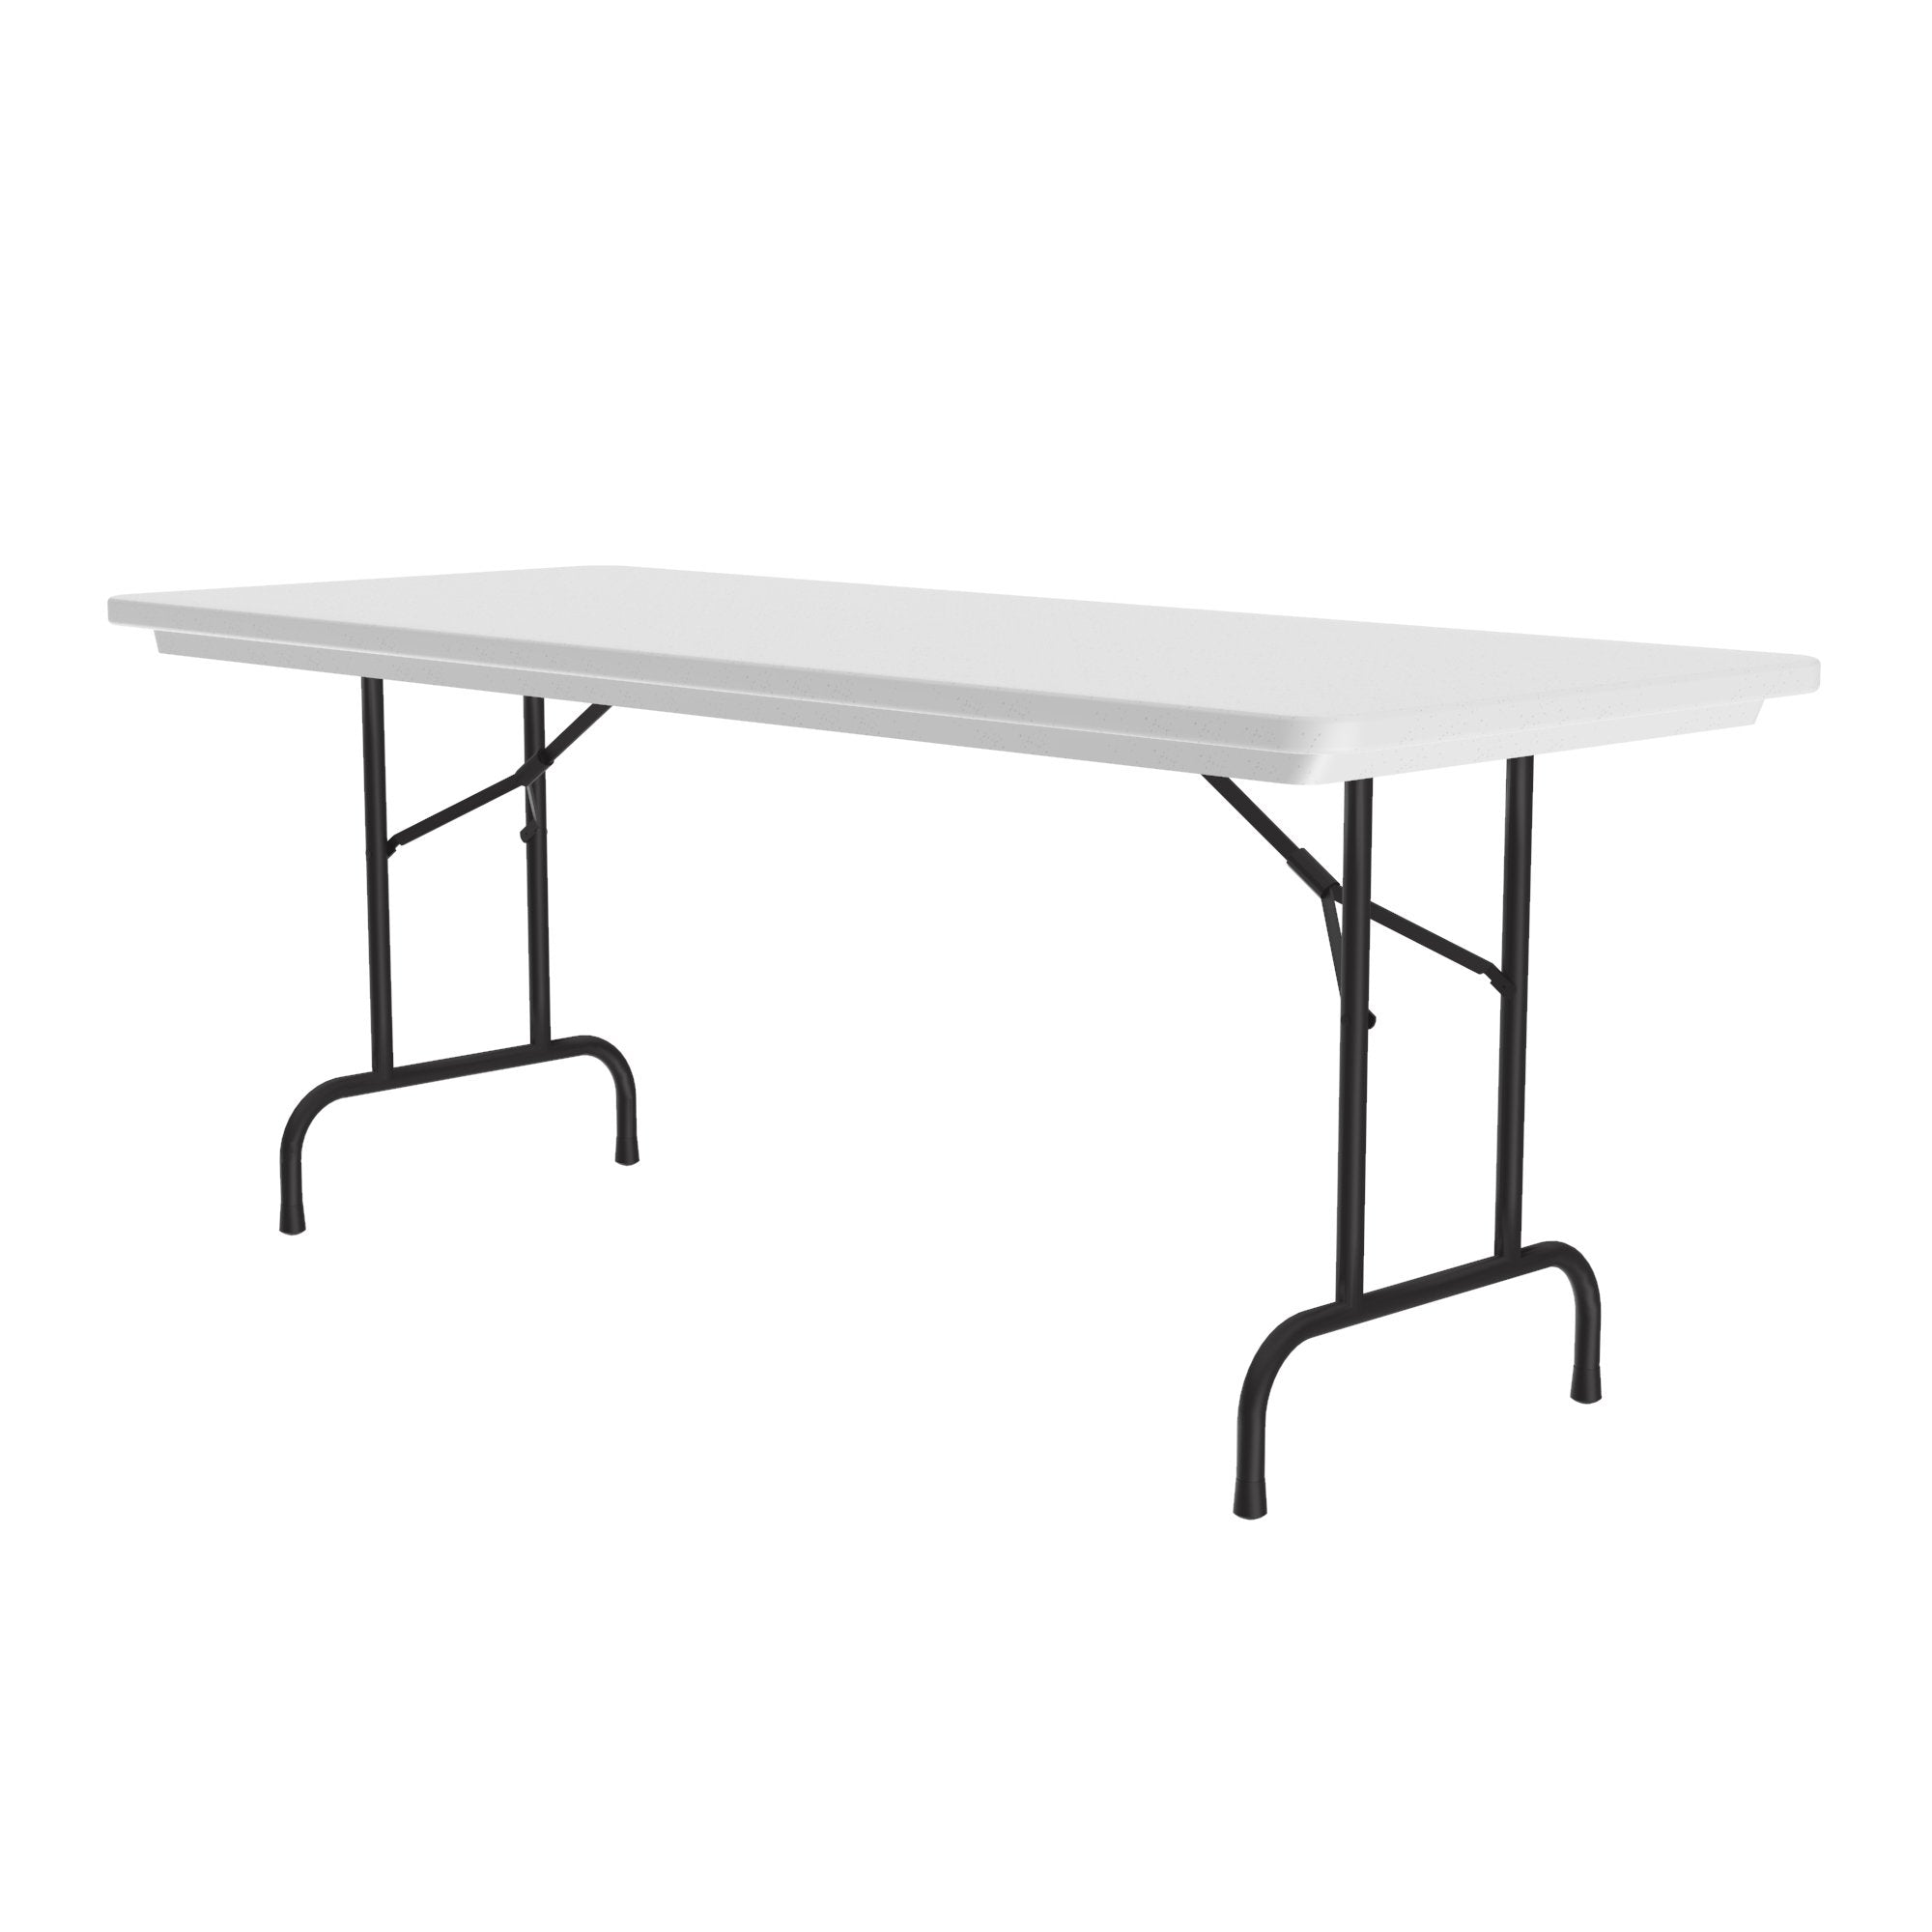 Anti-microbial Plastic Folding Tables